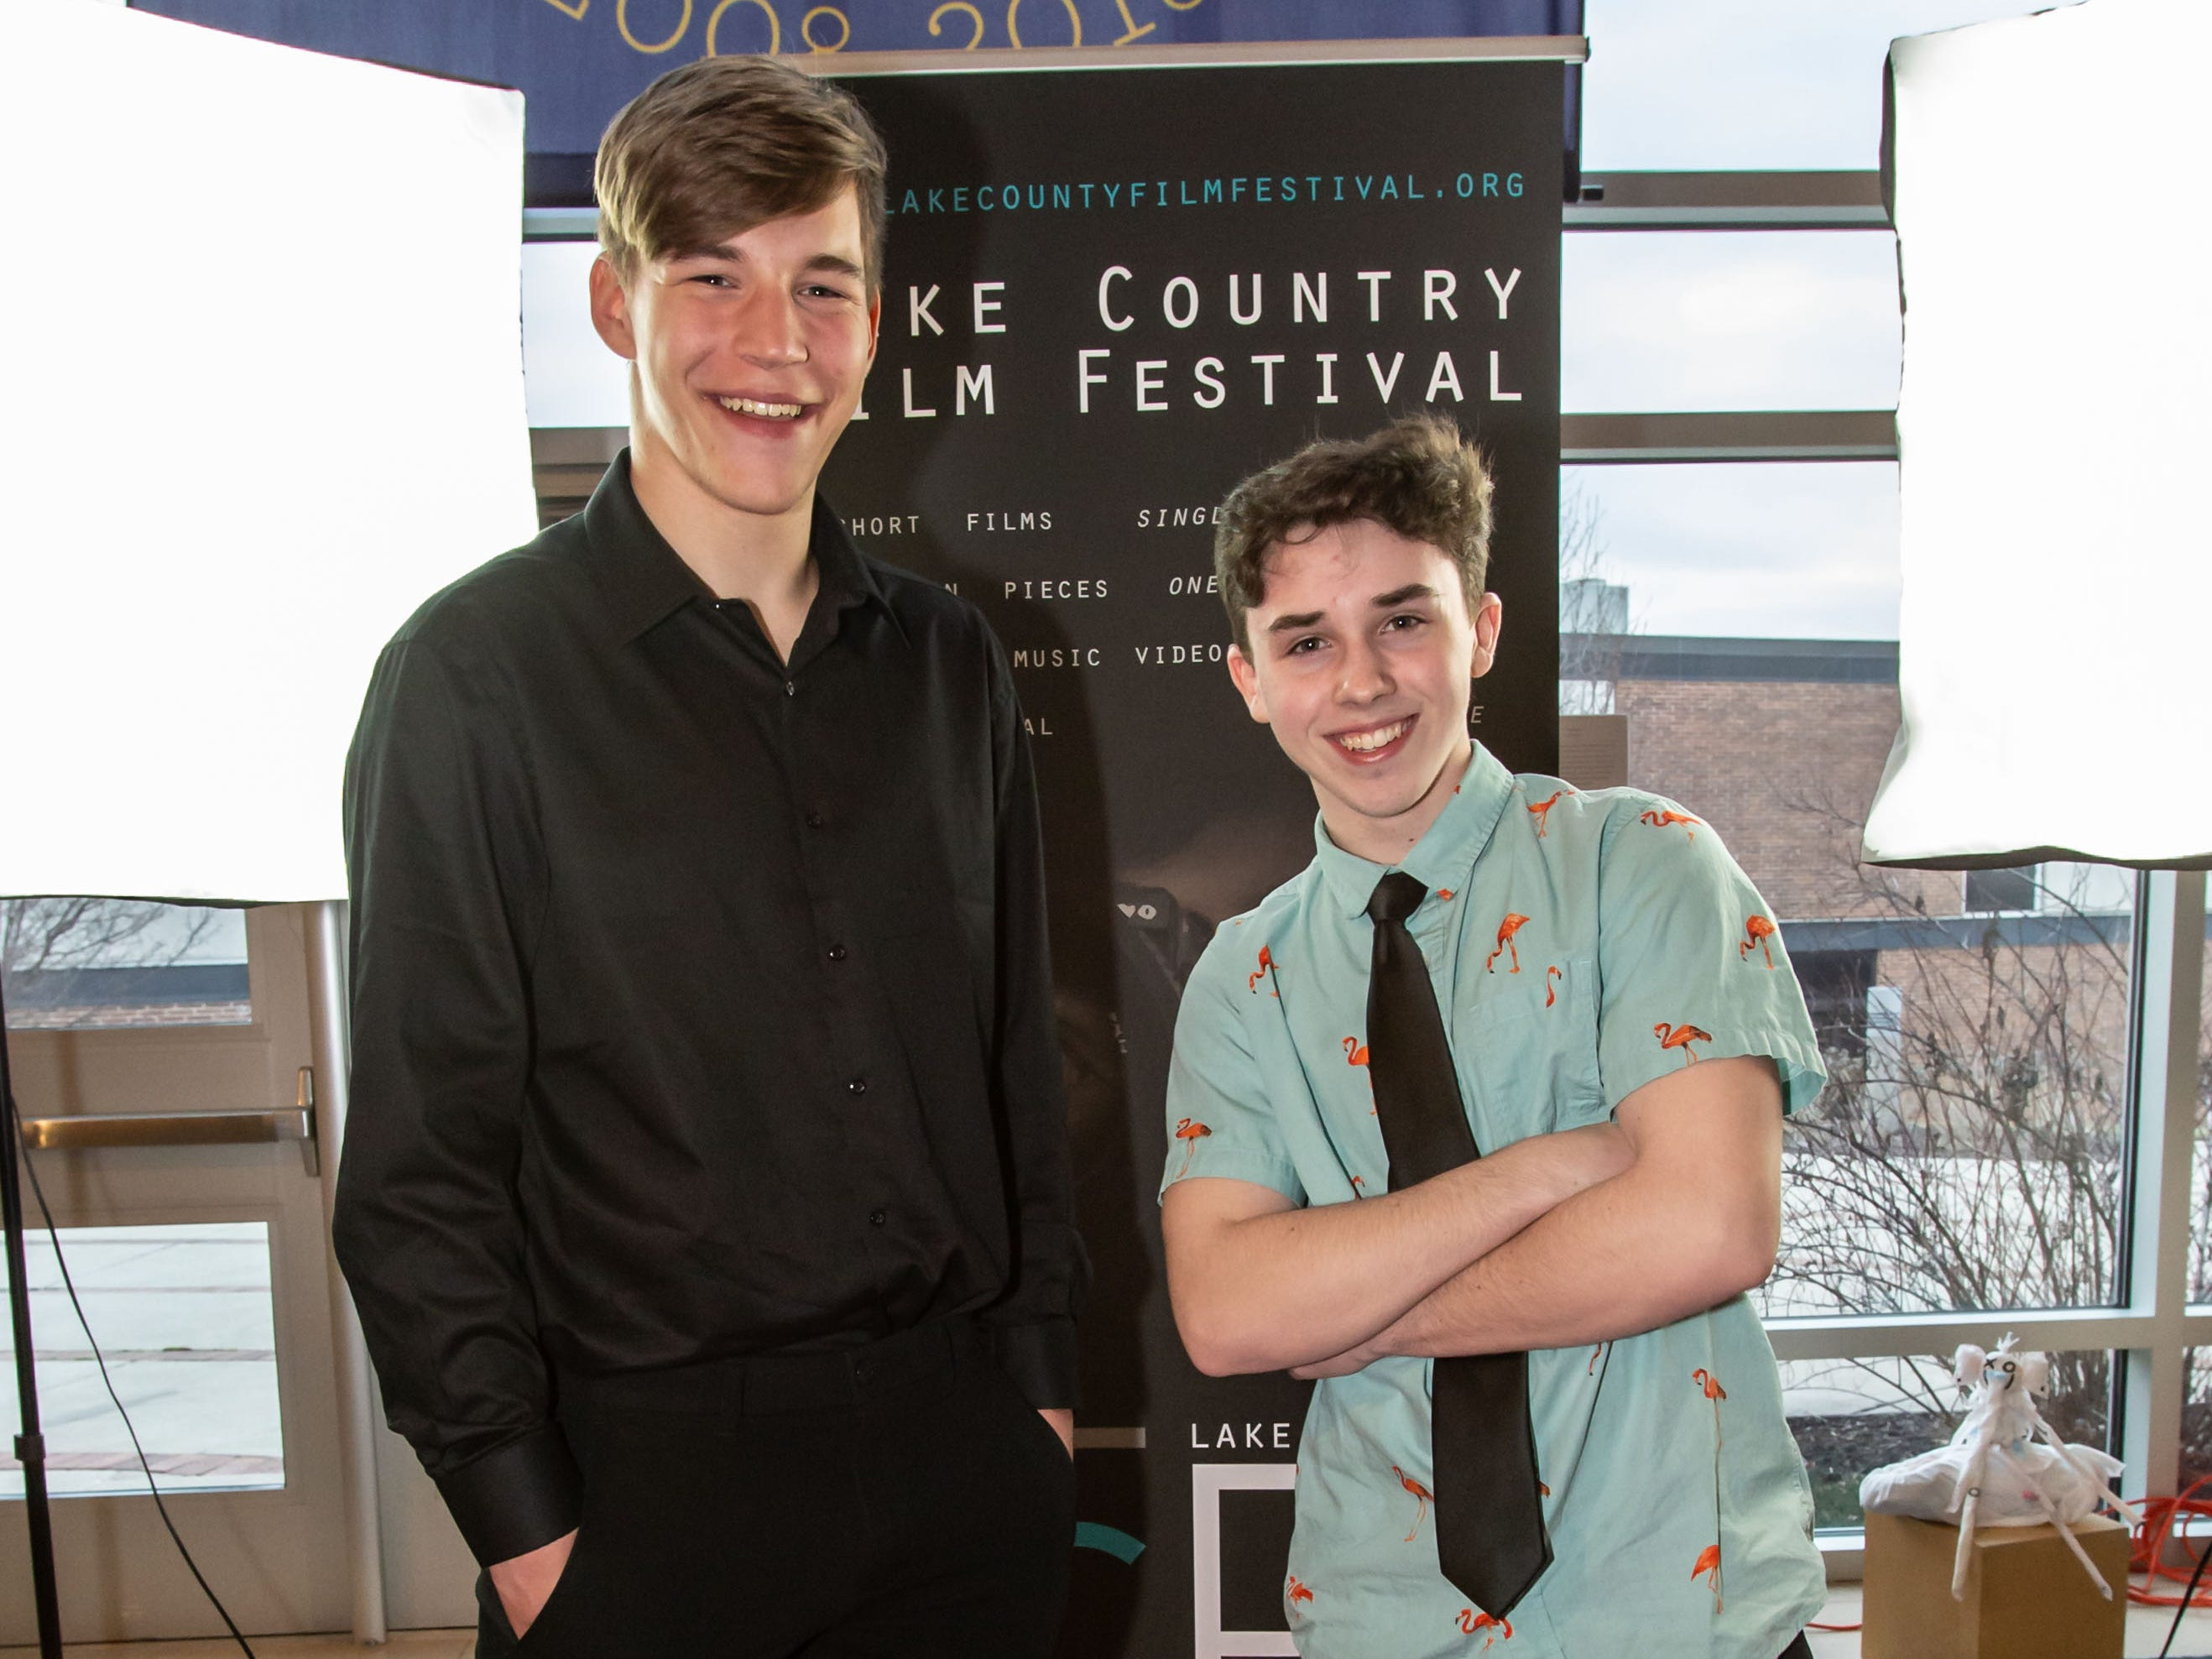 Filmmakers Jacob Becker (left) and Adam Dziegielewski, both of New Berlin, pause for a photo on the red carpet during the 4th Annual Lake Country Film Festival at the Oconomowoc Arts Center on Friday, April 5, 2019. The annual festival is open to students in the Lake Country Area and aims to encourage future filmmakers to create work that inspires audiences through the power of visual artistry, sound design, and storytelling.